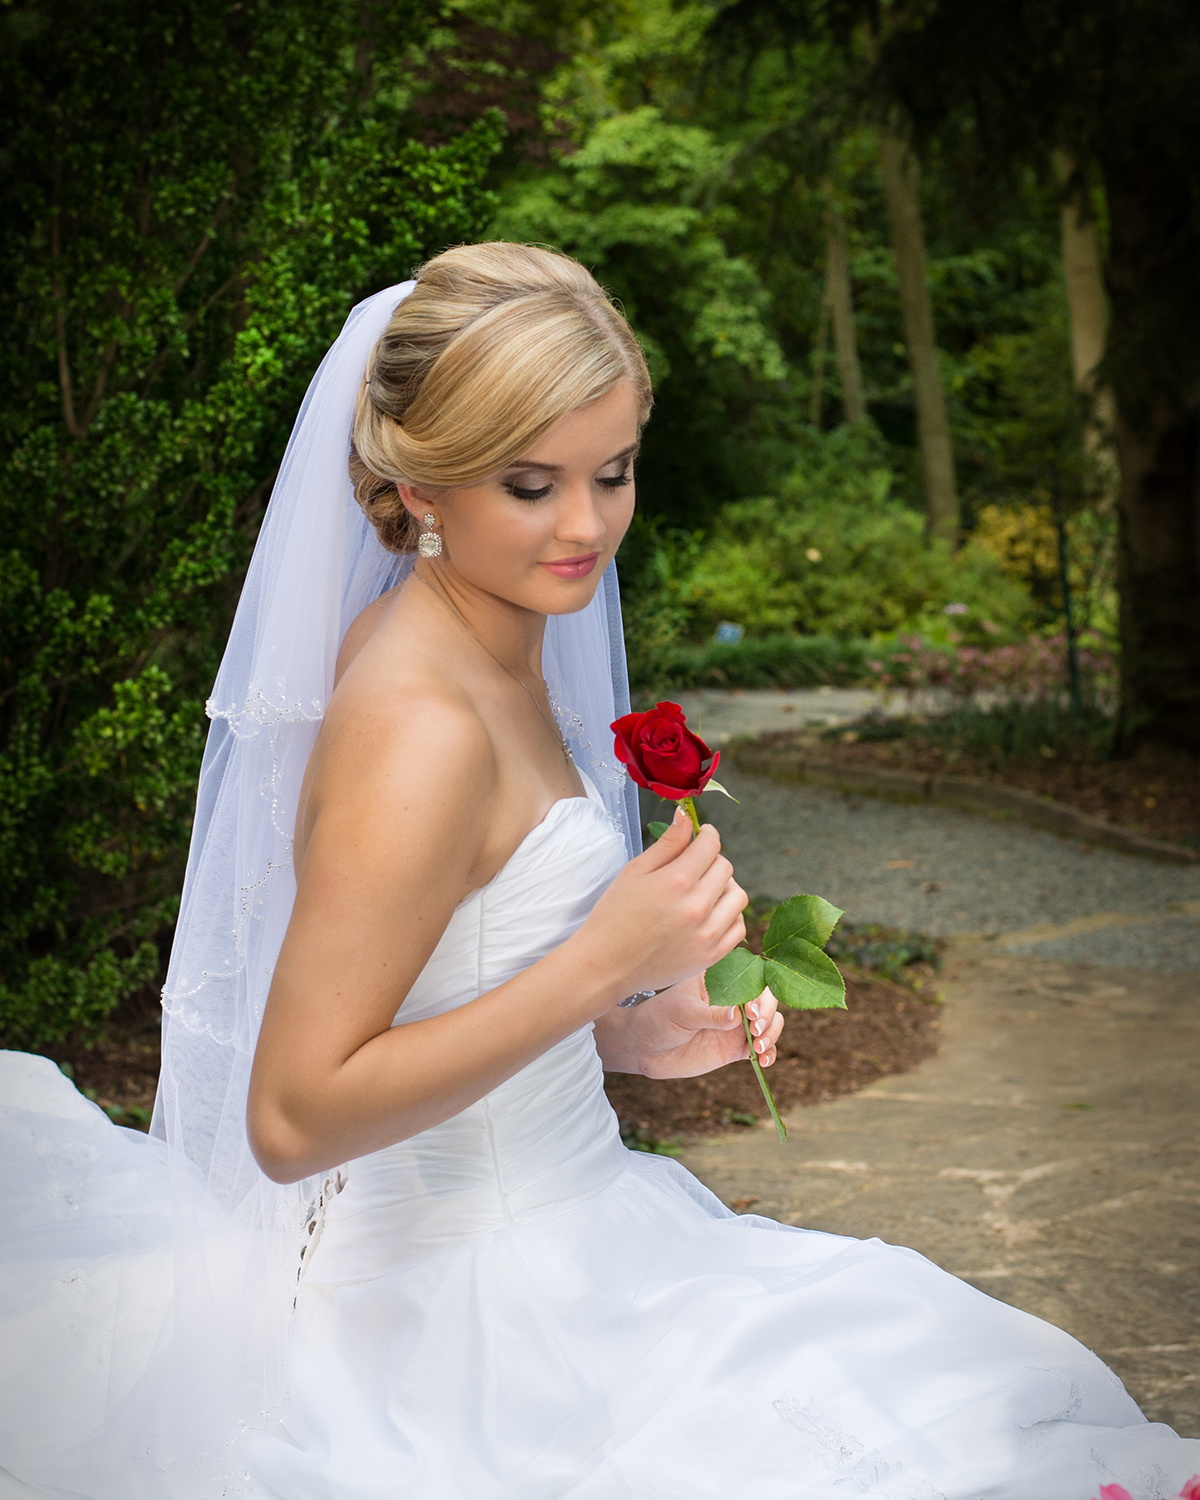 A bride poses with a red rose at the UNC Charlotte Botanical gardens